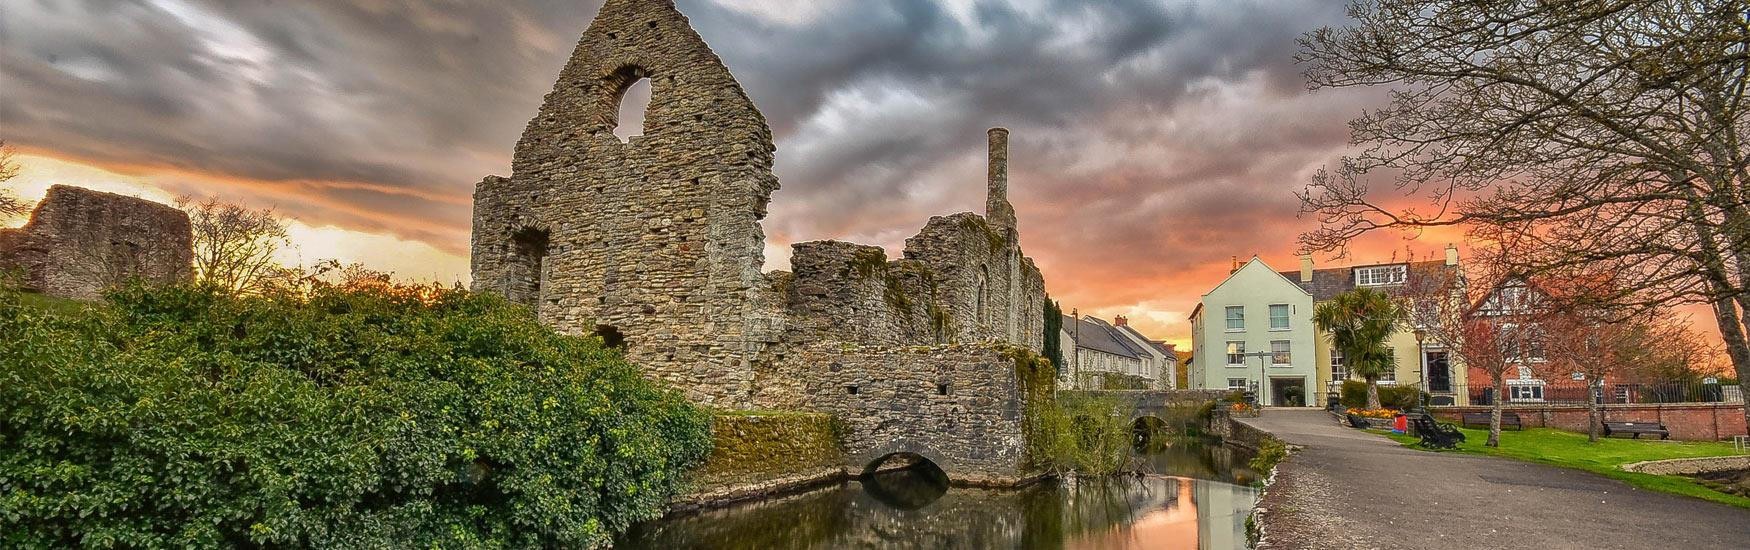 Beautiful image in Christchurch showing the River and Norman House Ruins